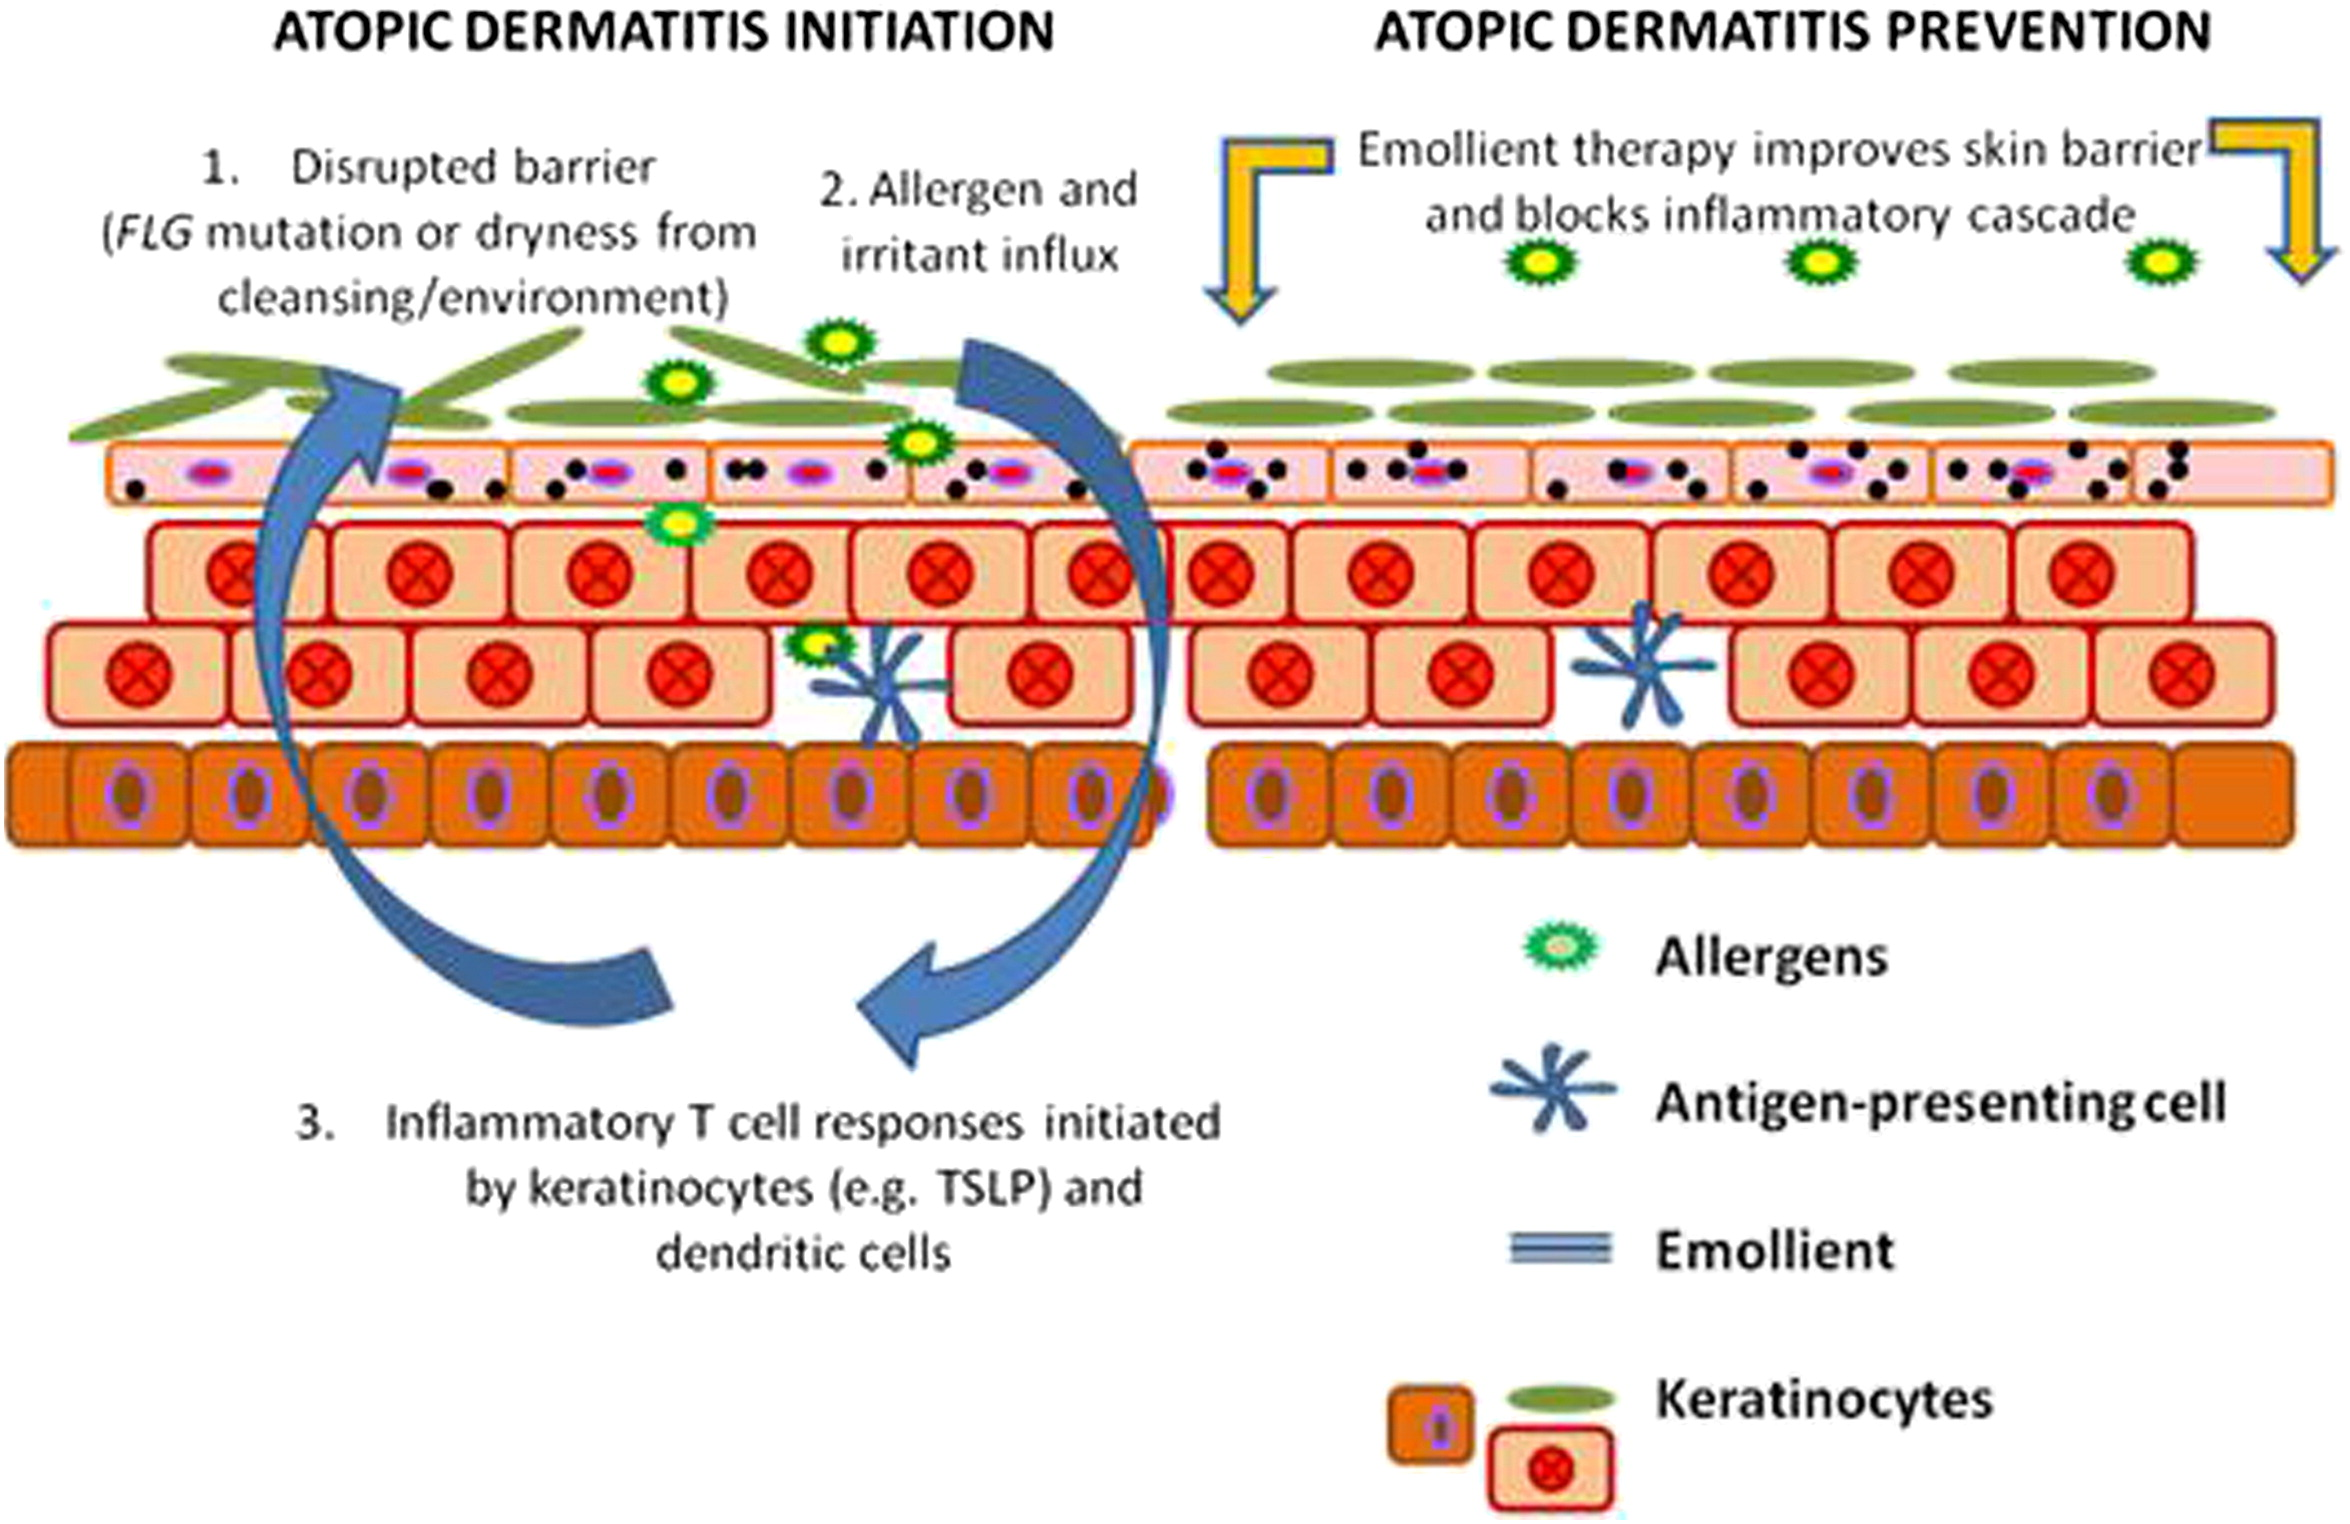 Bild ur  Emollient enhancement of the skin barrier from birth offers effective atopic dermatitis prevention  i Journal of Allergy and Clinical Immunology,2014